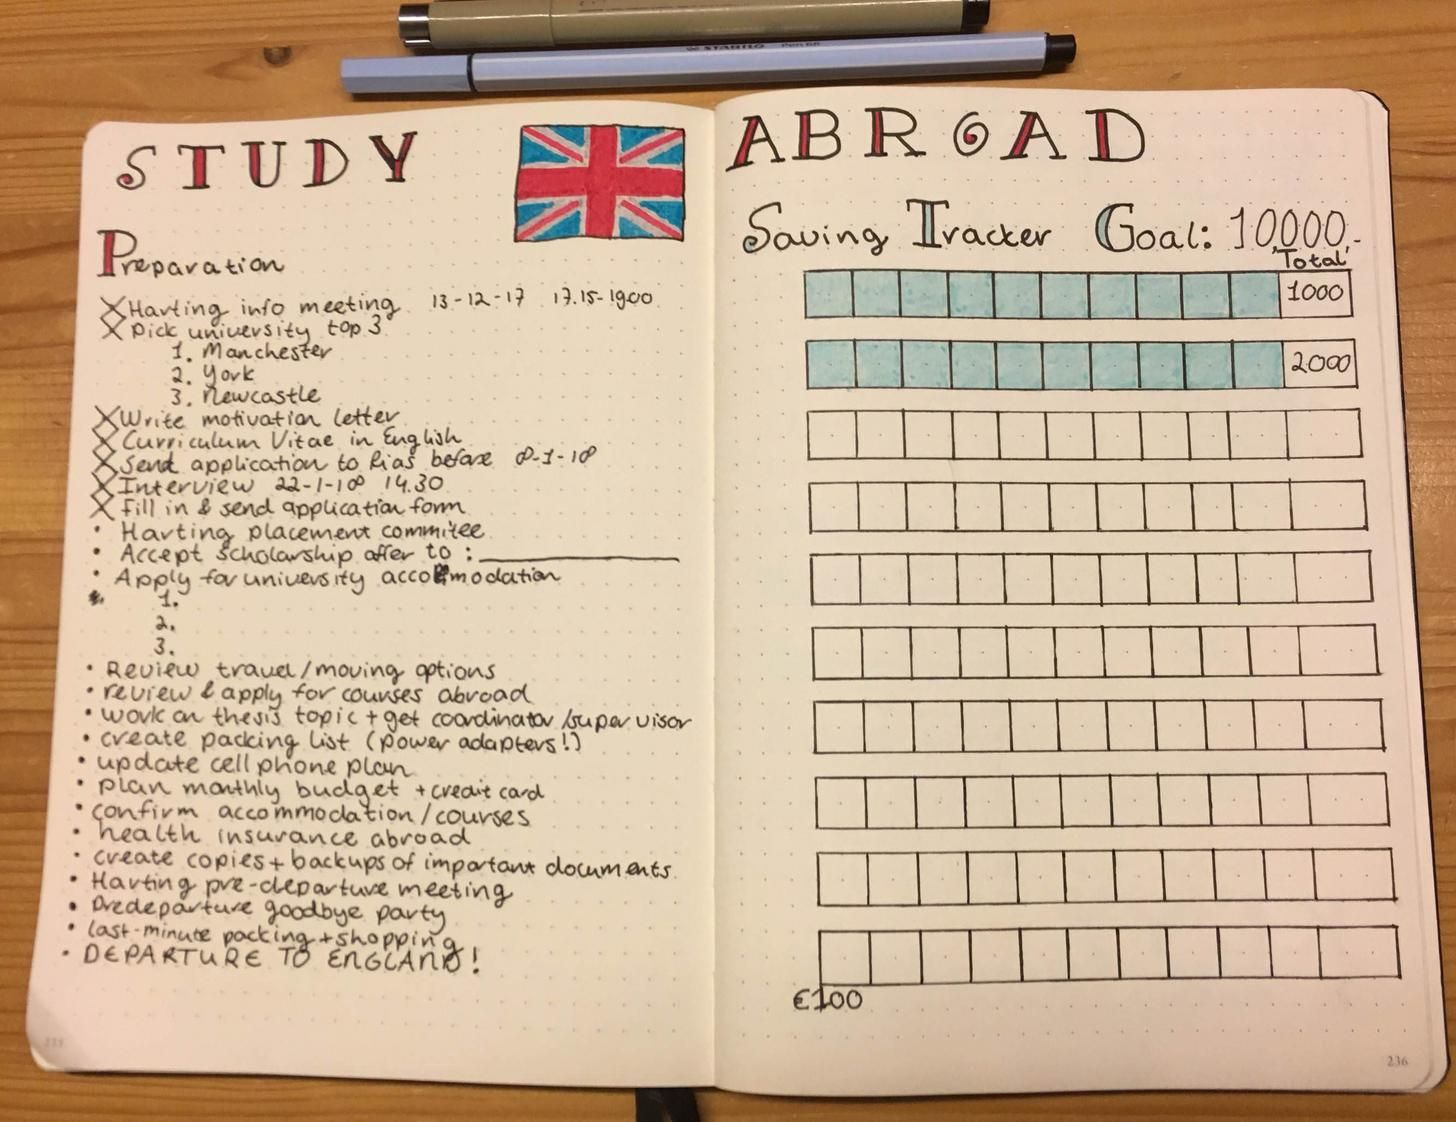 My Study Abroad Collection Study Abroad Study Abroad